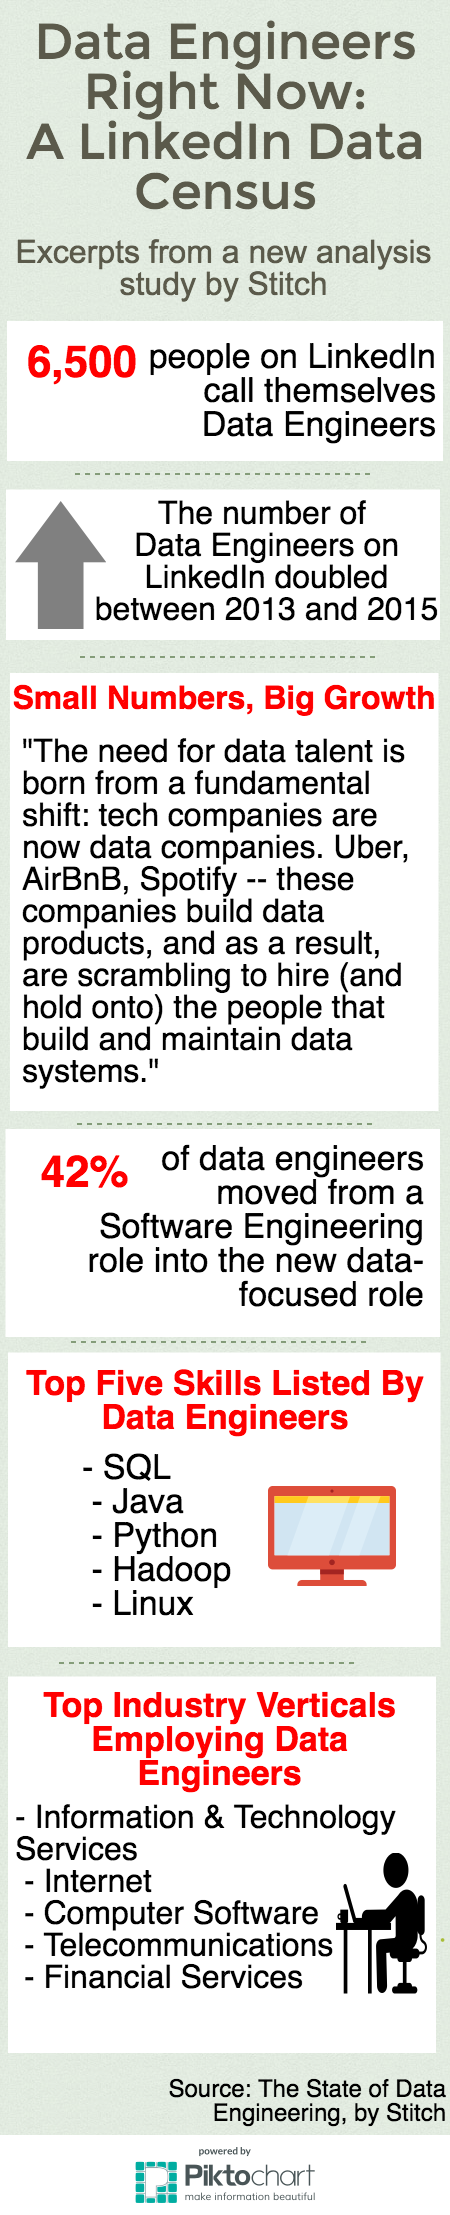 data-engineer-infographic.png